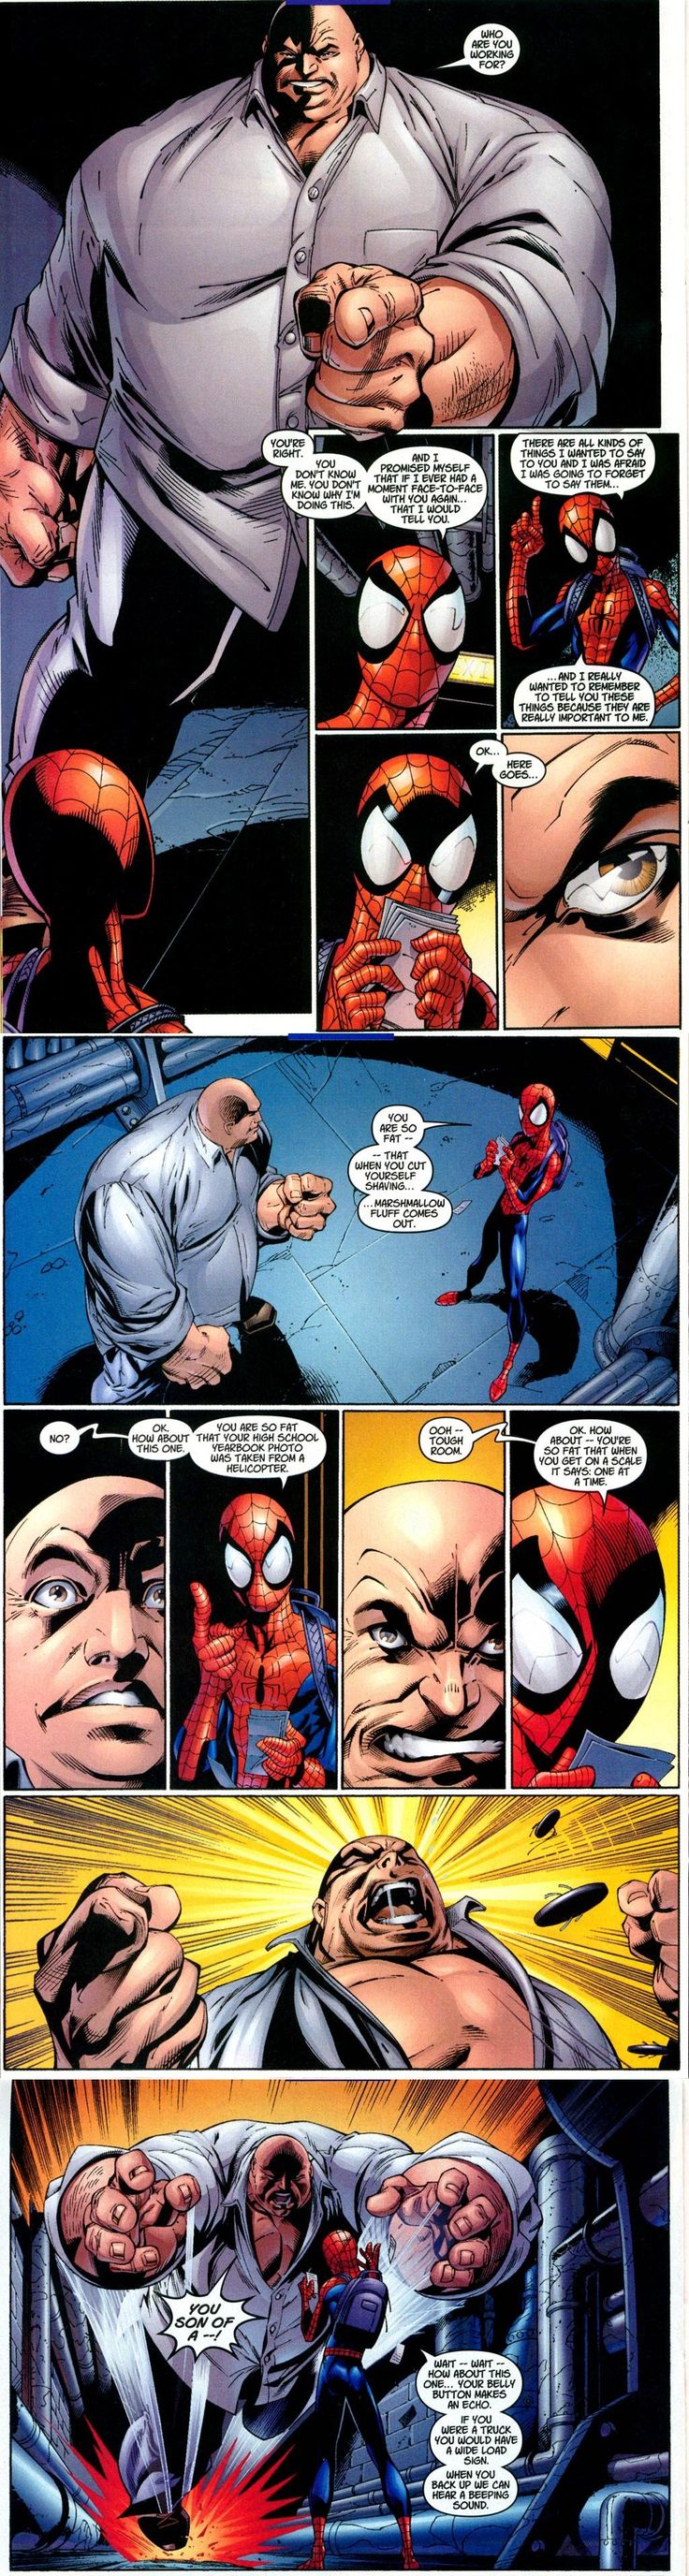 Ultimate Spider-Man & Kingpin ~ say what you will about the Ultimate books: this was one of the funniest books I'd read in a while